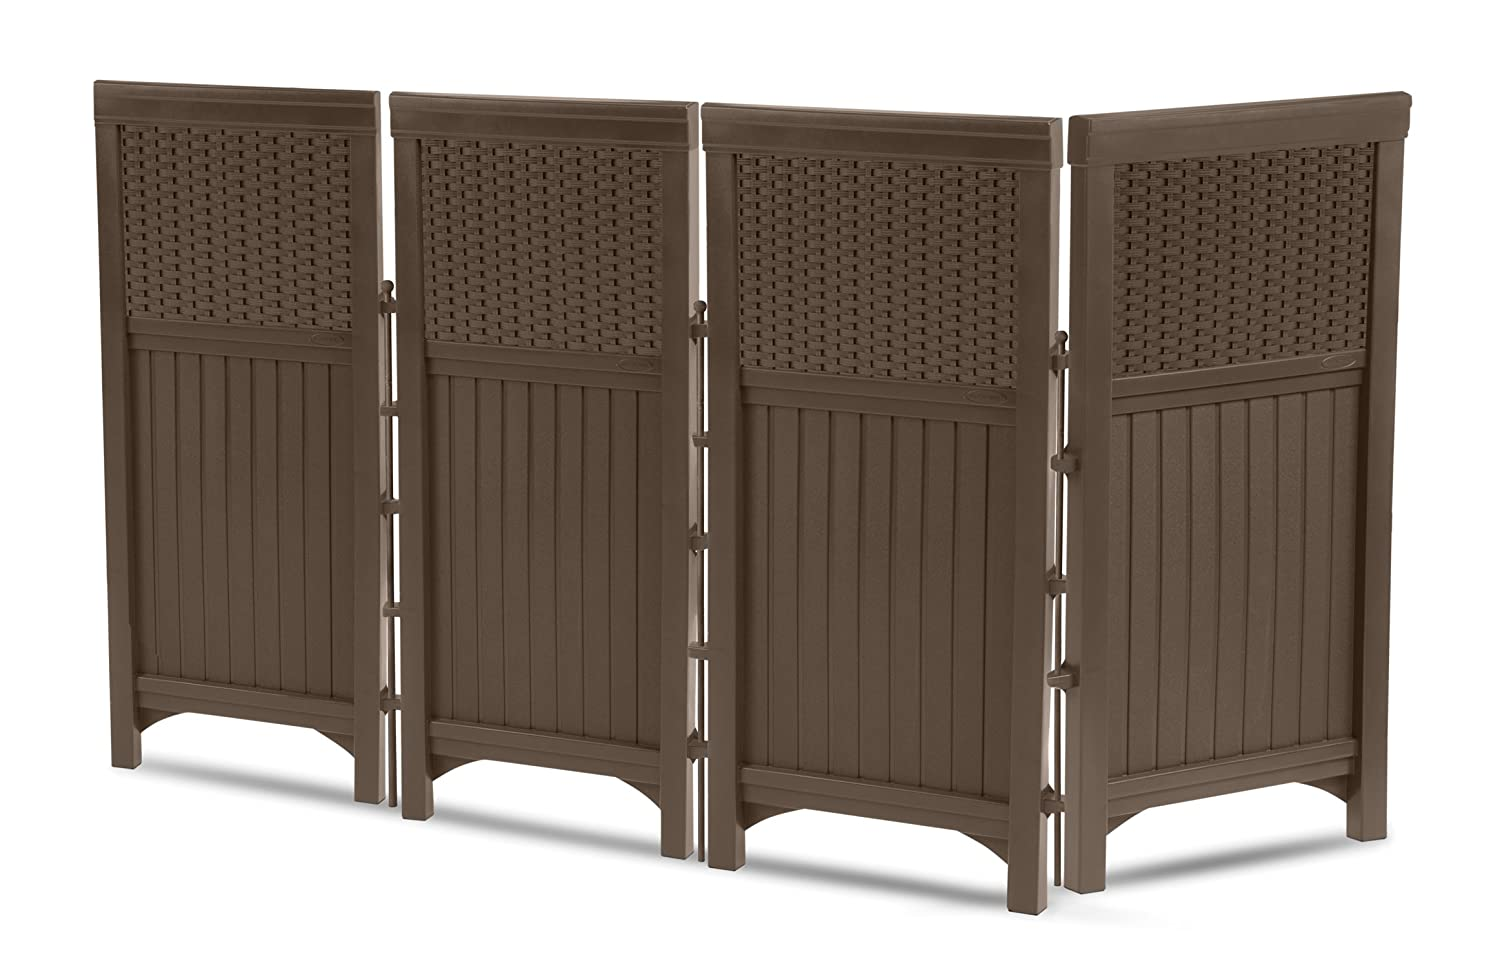 Suncast 4 Panel Outdoor Screen Enclosure - Freestanding Wicker Resin Reversible Panel Outdoor Screen - Perfect for Concealing Garbage Cans, Air Conditioners - Brown - 44 Inches In Height